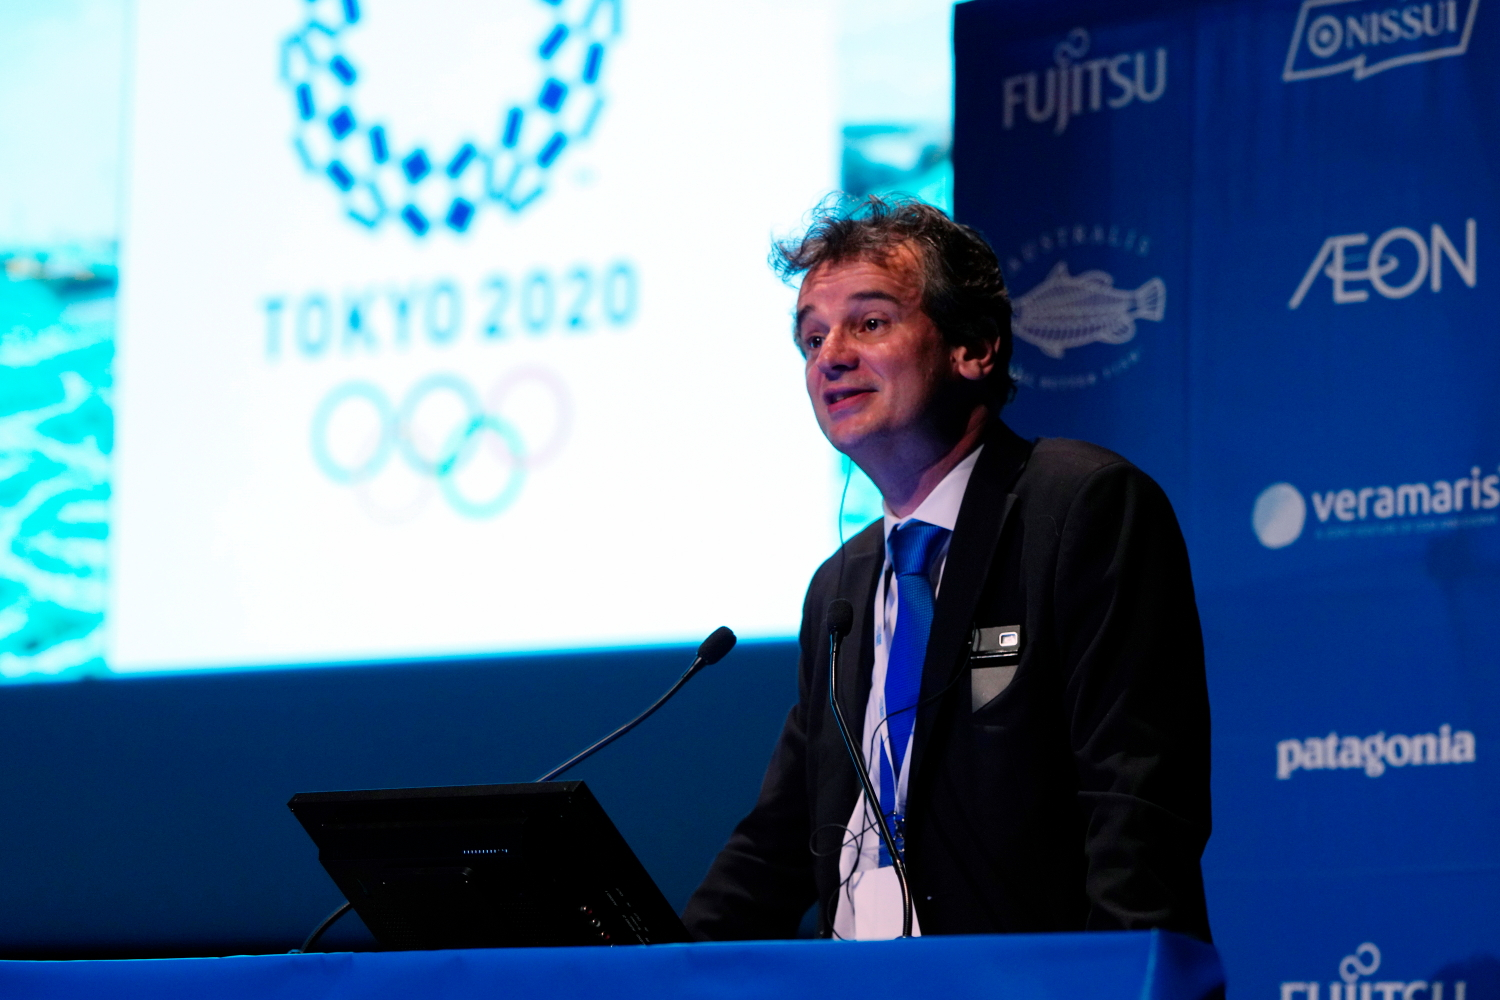 P-11 Beyond 2020: Tokyo Olympic Legacy